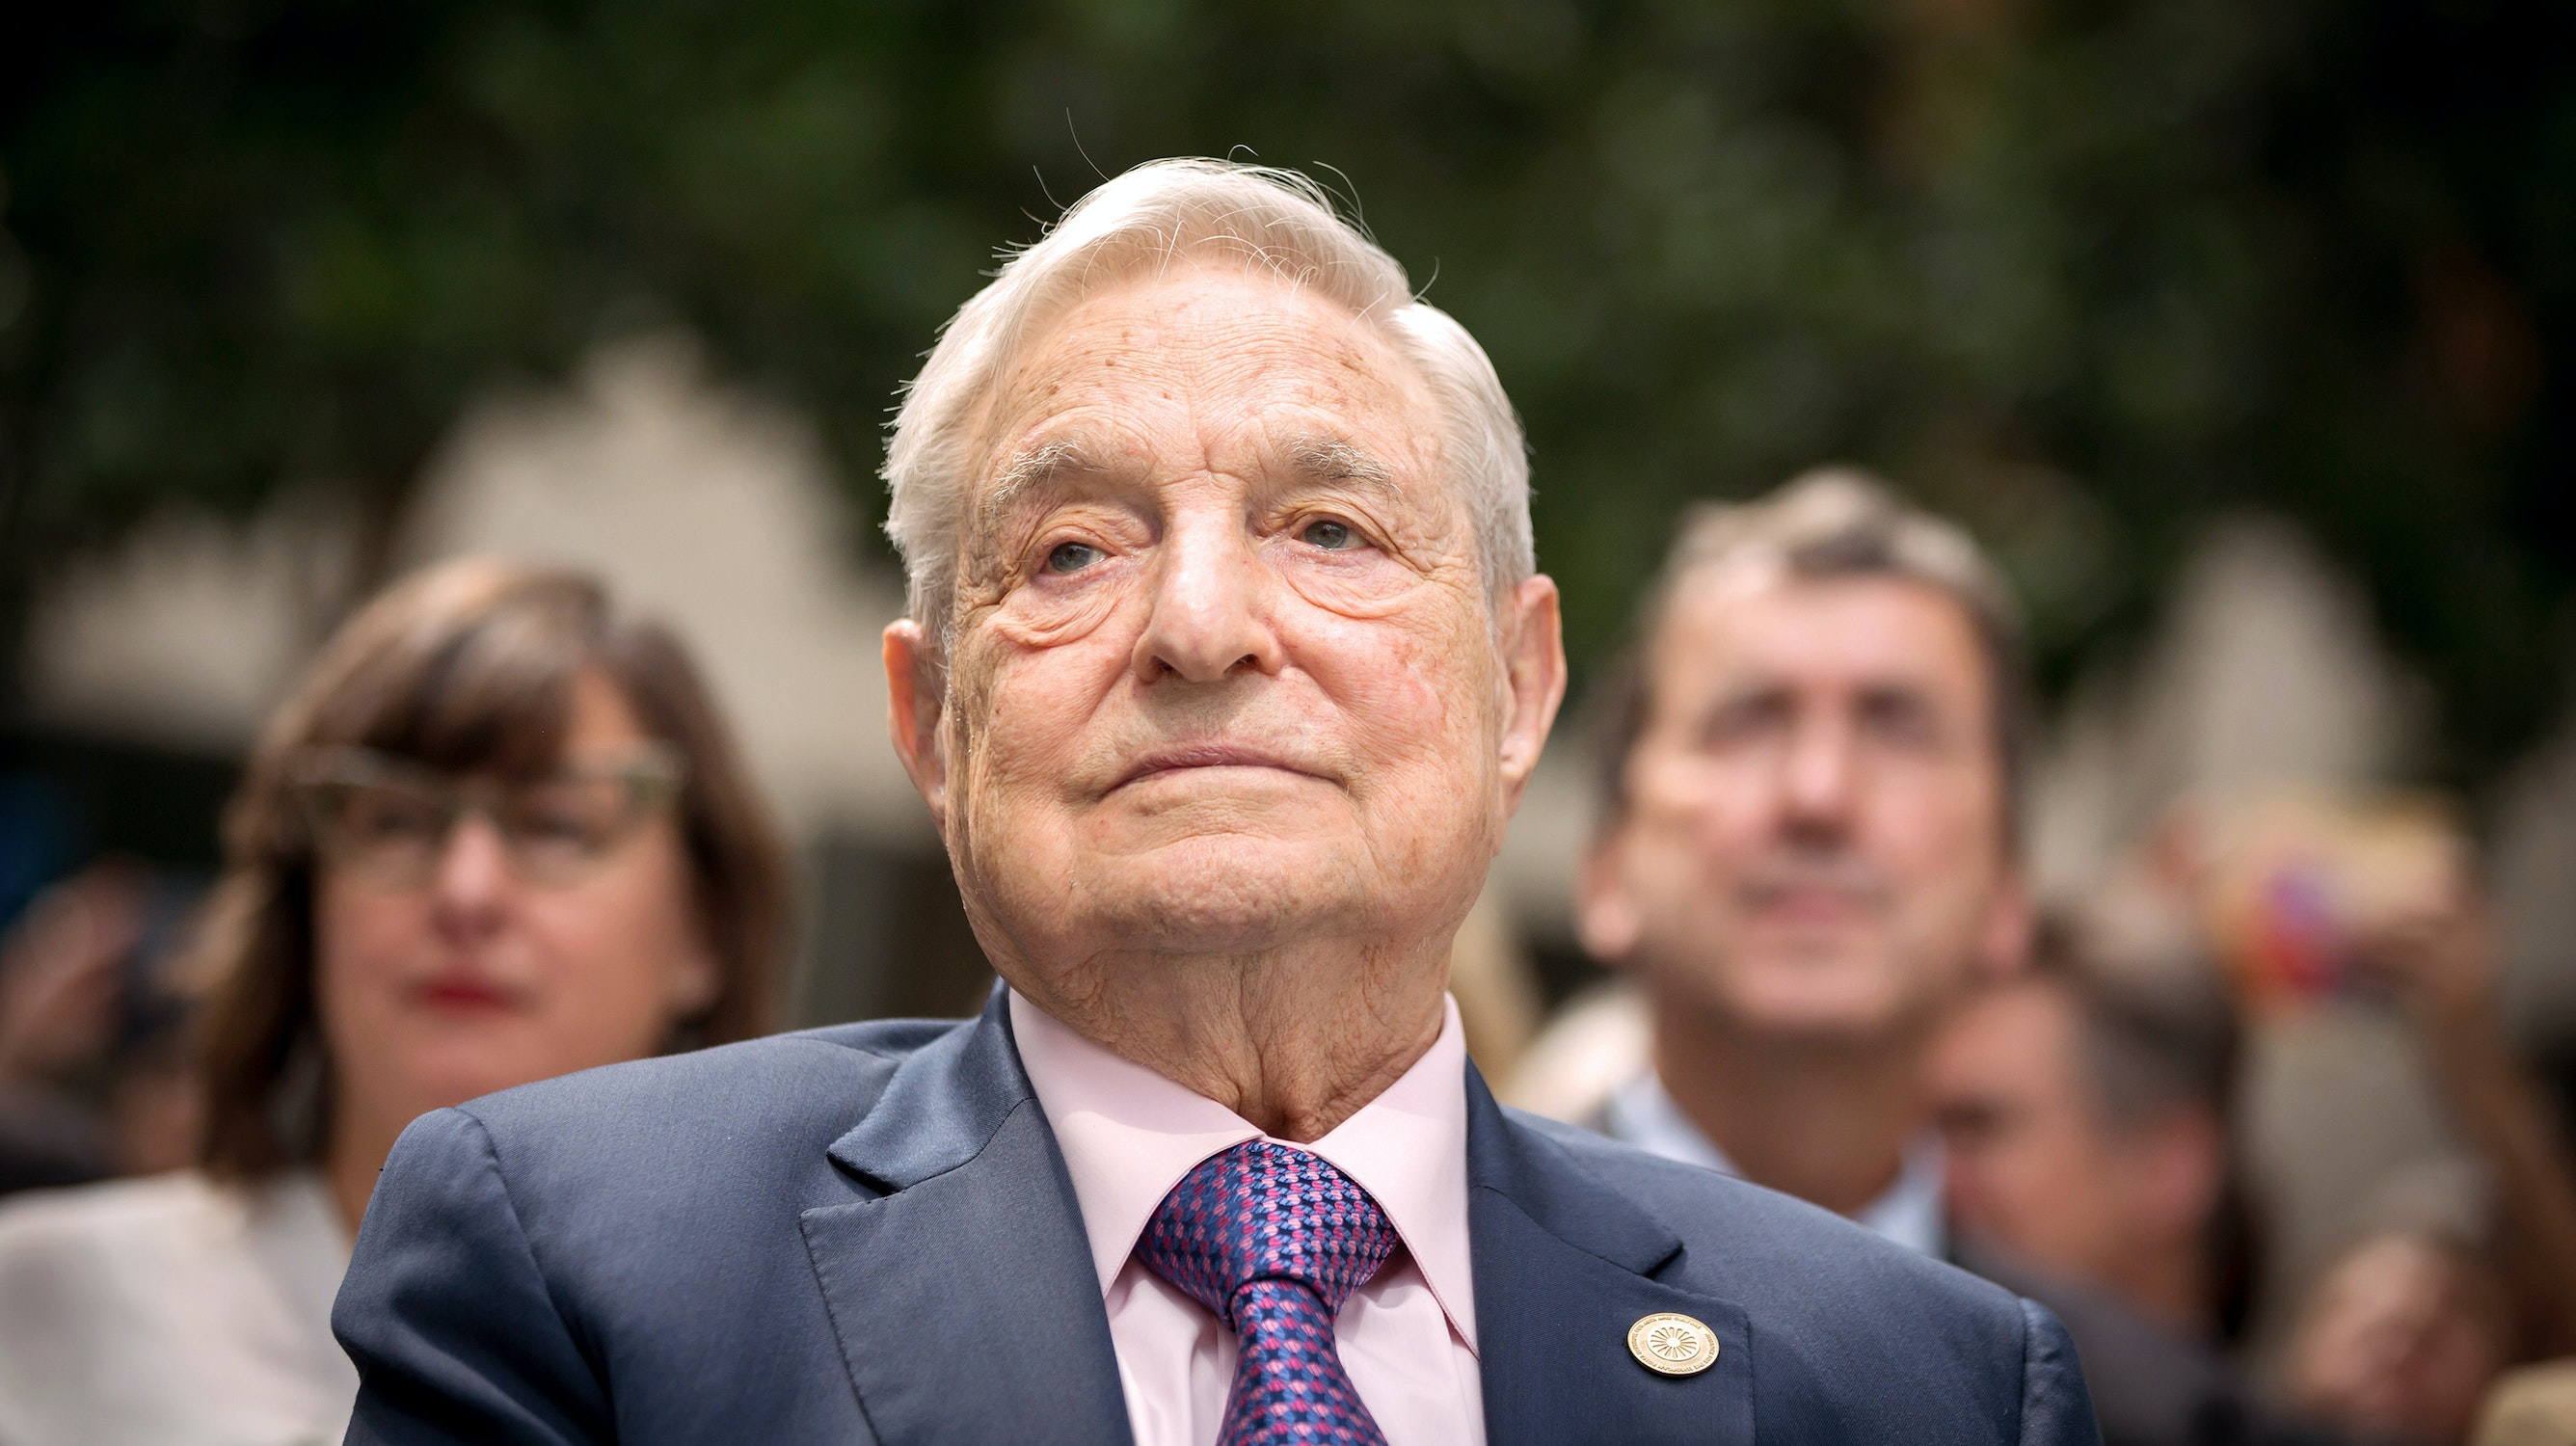 George Soros - Open Society Foundations